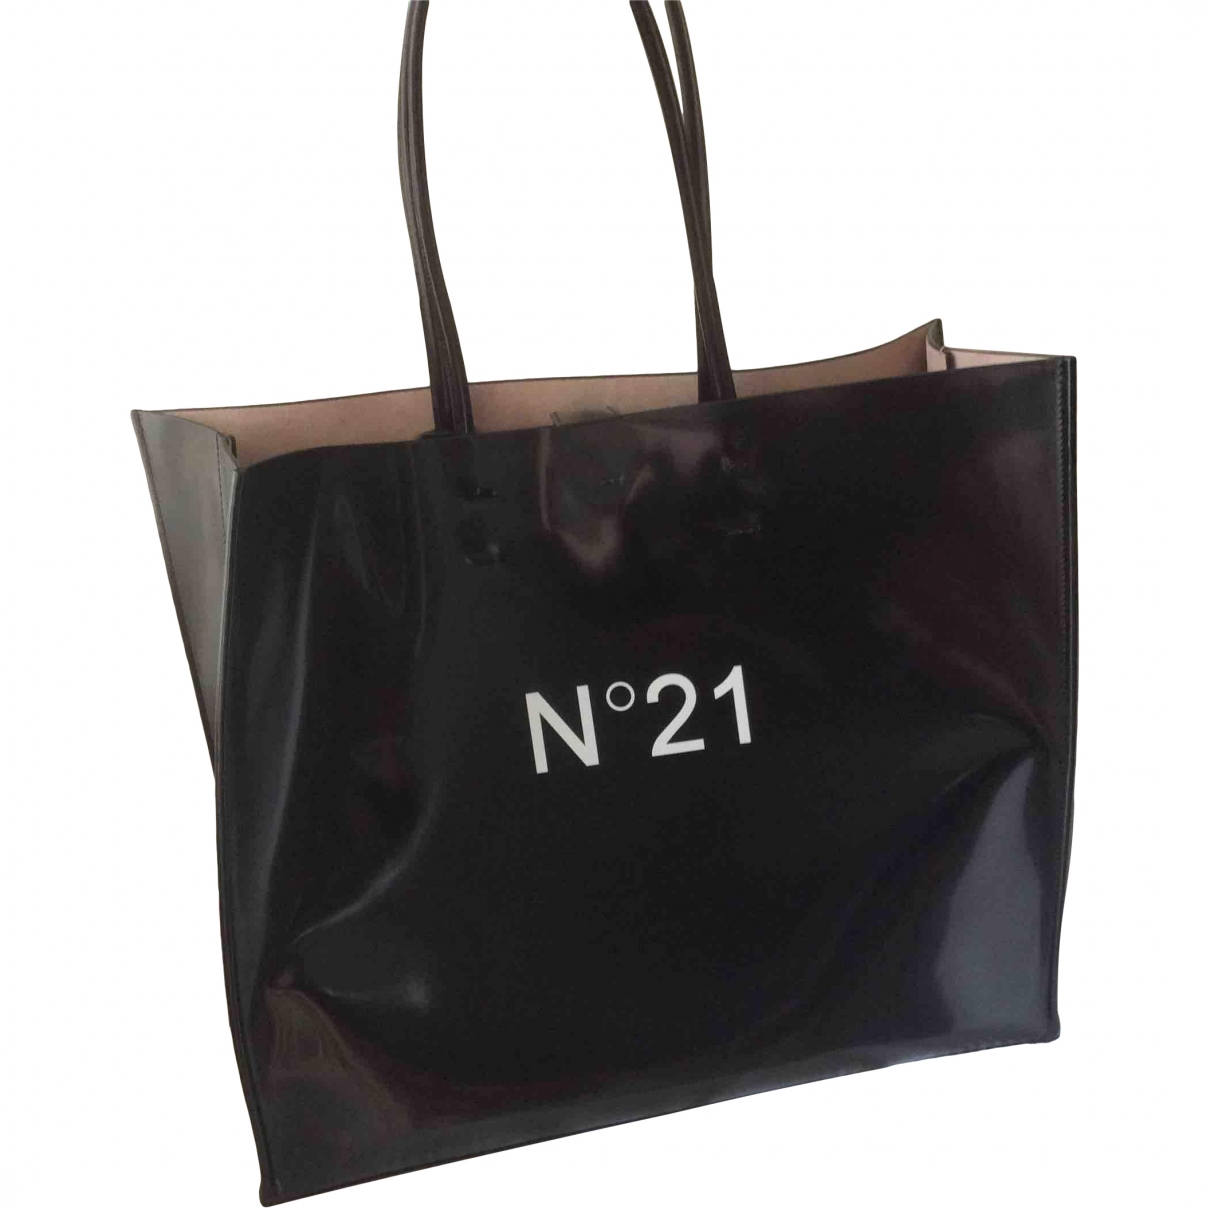 N°21 \N Black Leather handbag for Women \N